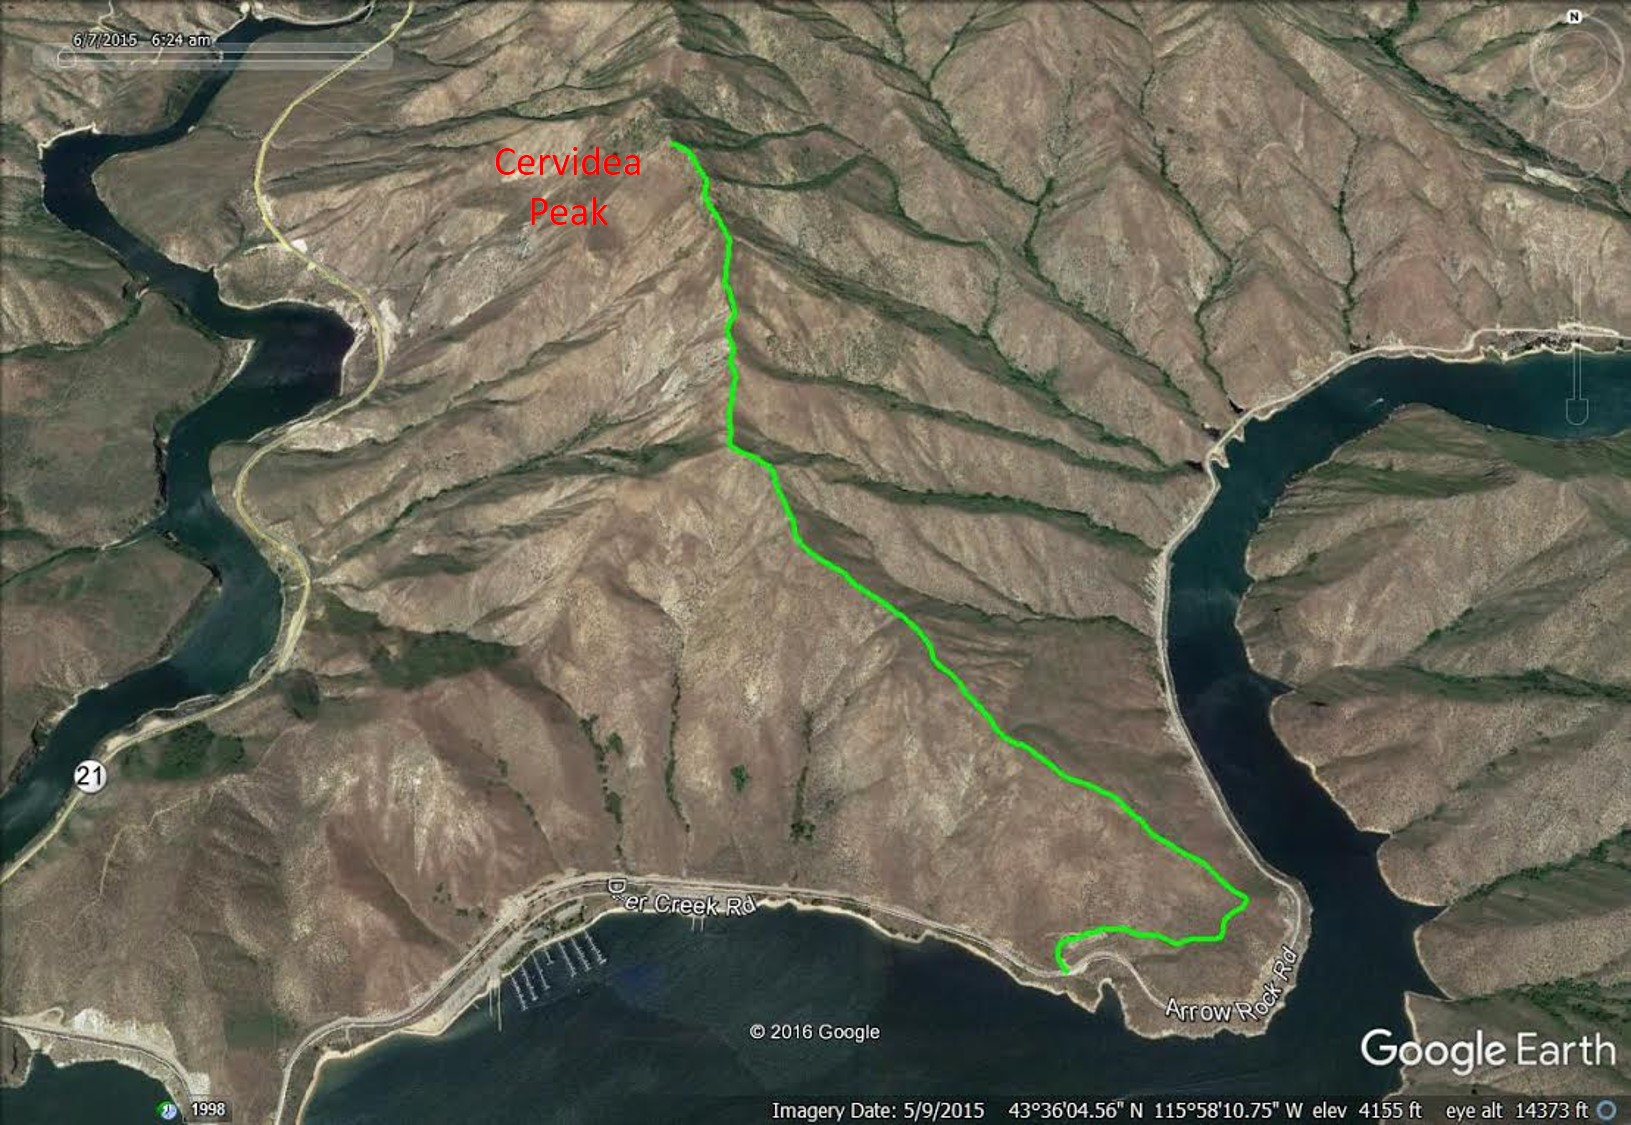 My GPS track for the Southeast Ridge route superimposed on a Google Earth.